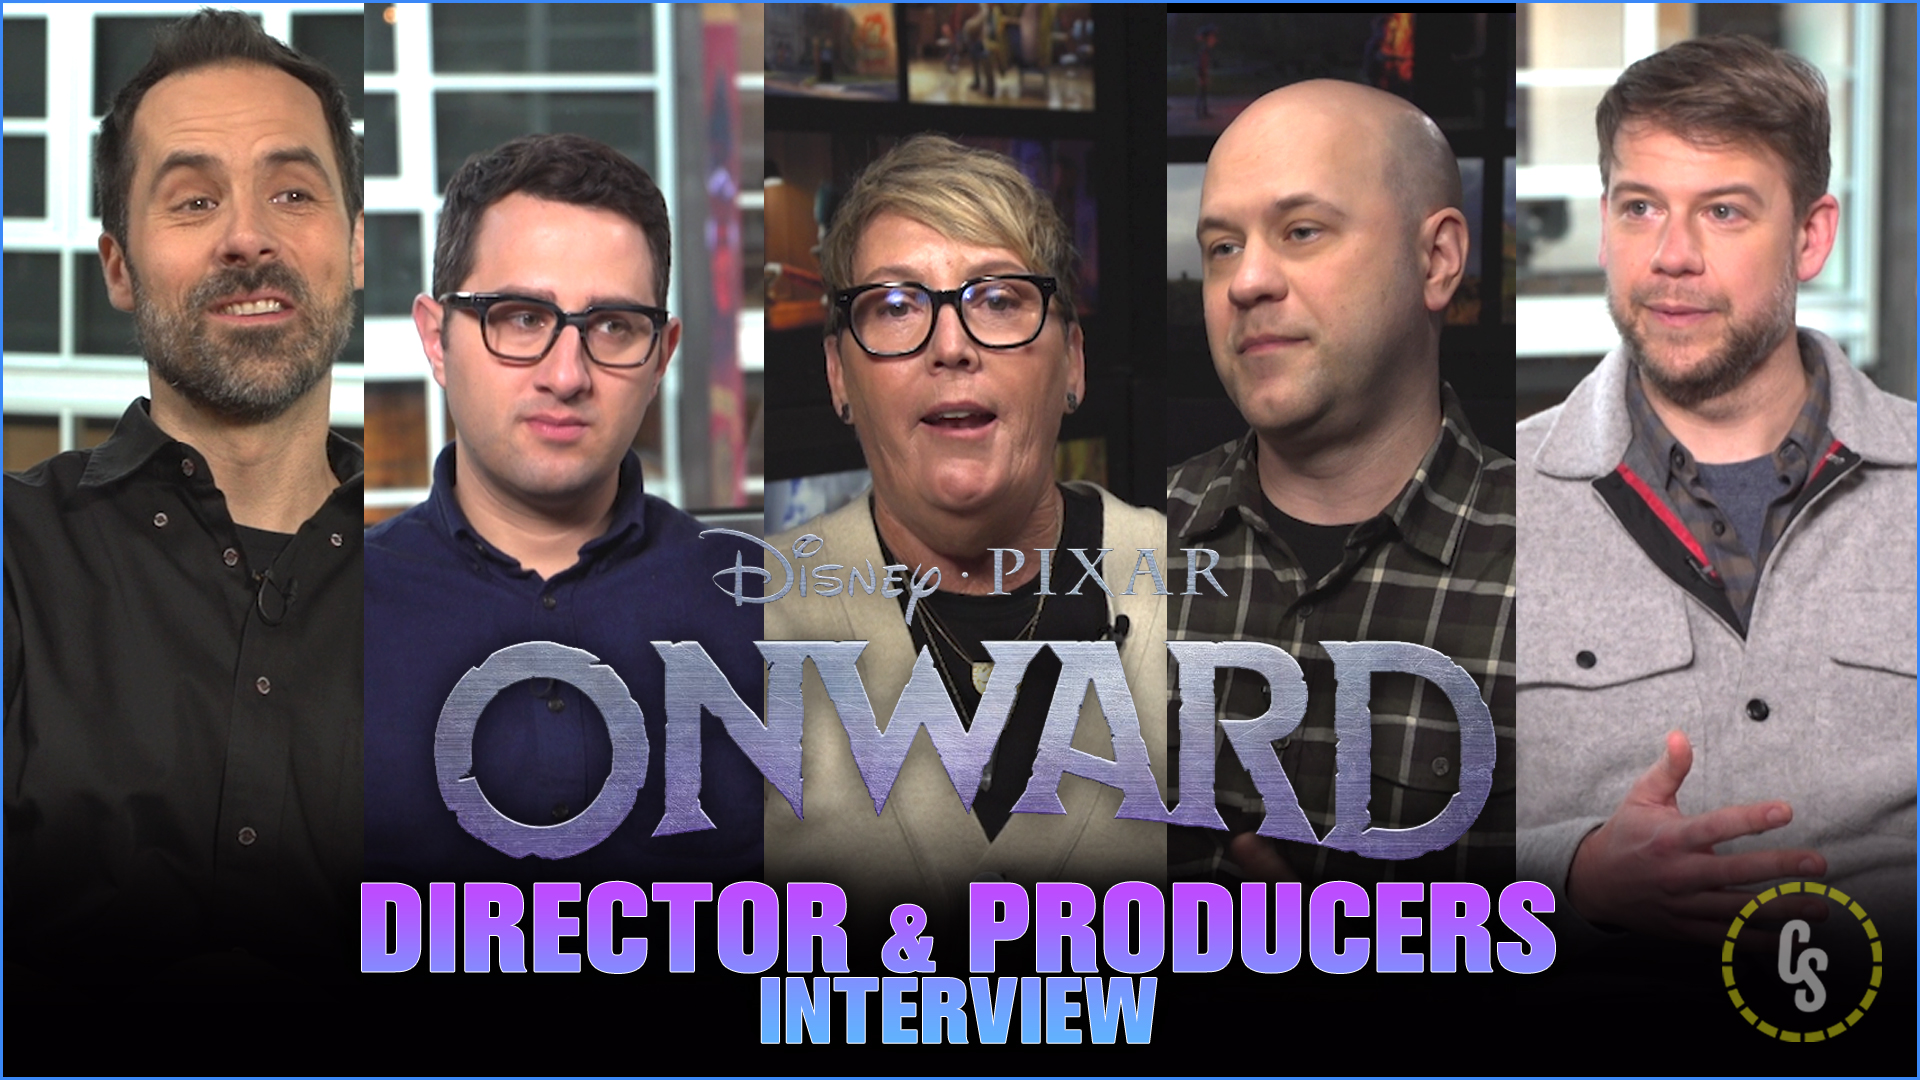 CS Video: Director Dan Scanlon & Producers Talk Onward